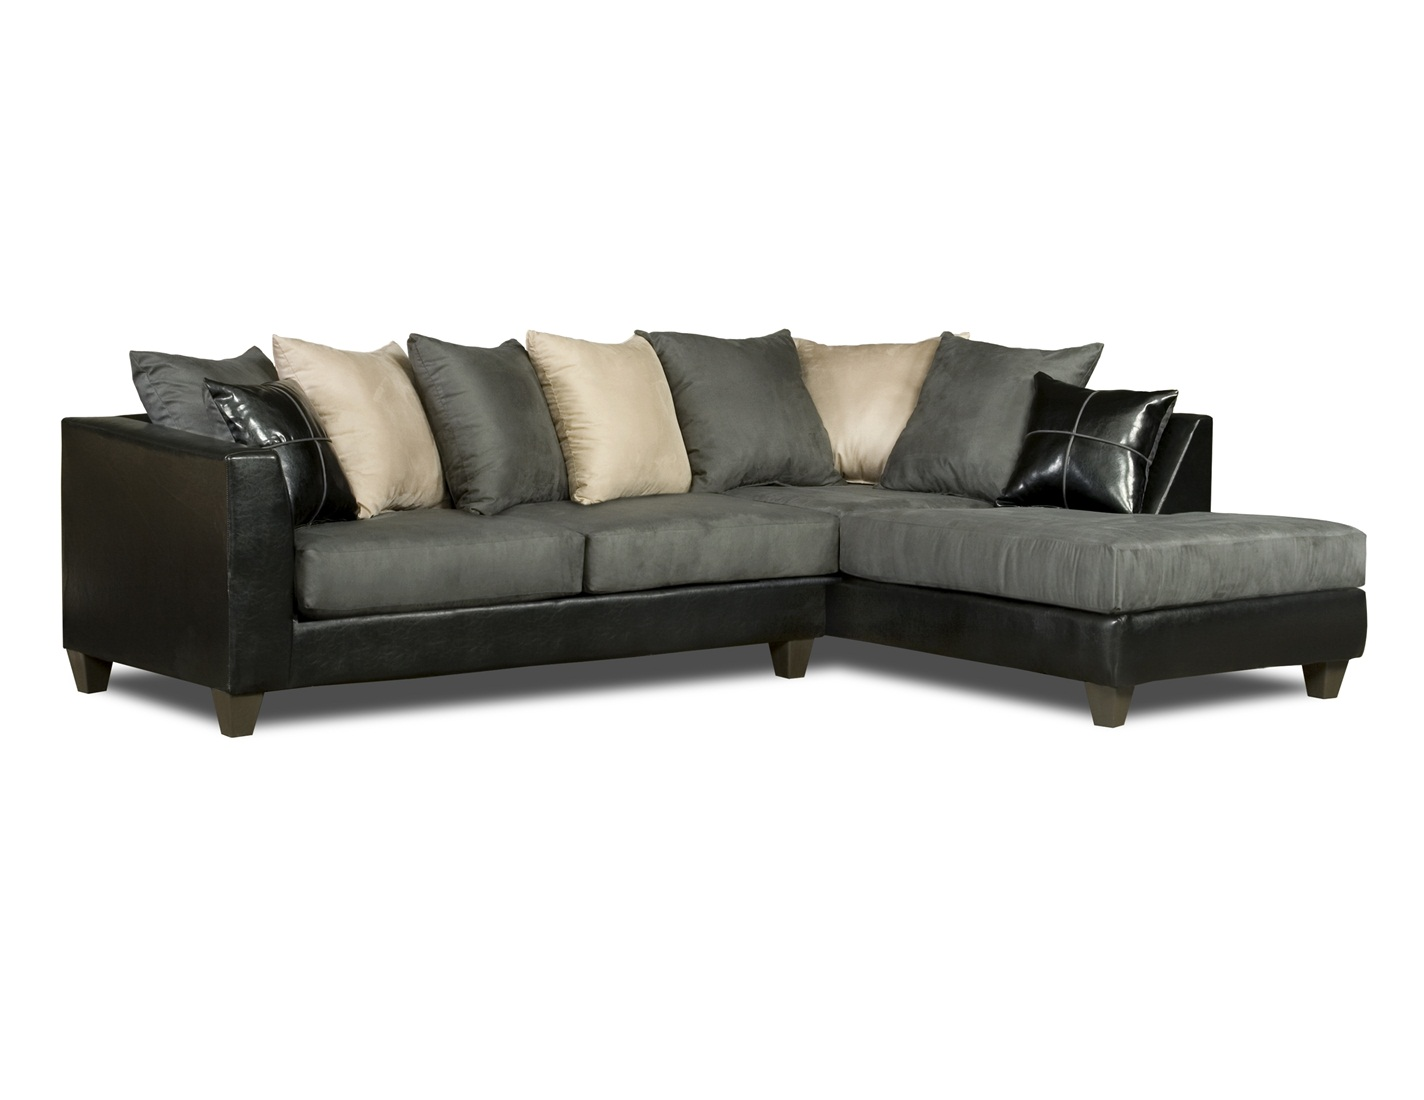 Black Gray Amp White Sectional Sofa Loose Pillow Back 4184